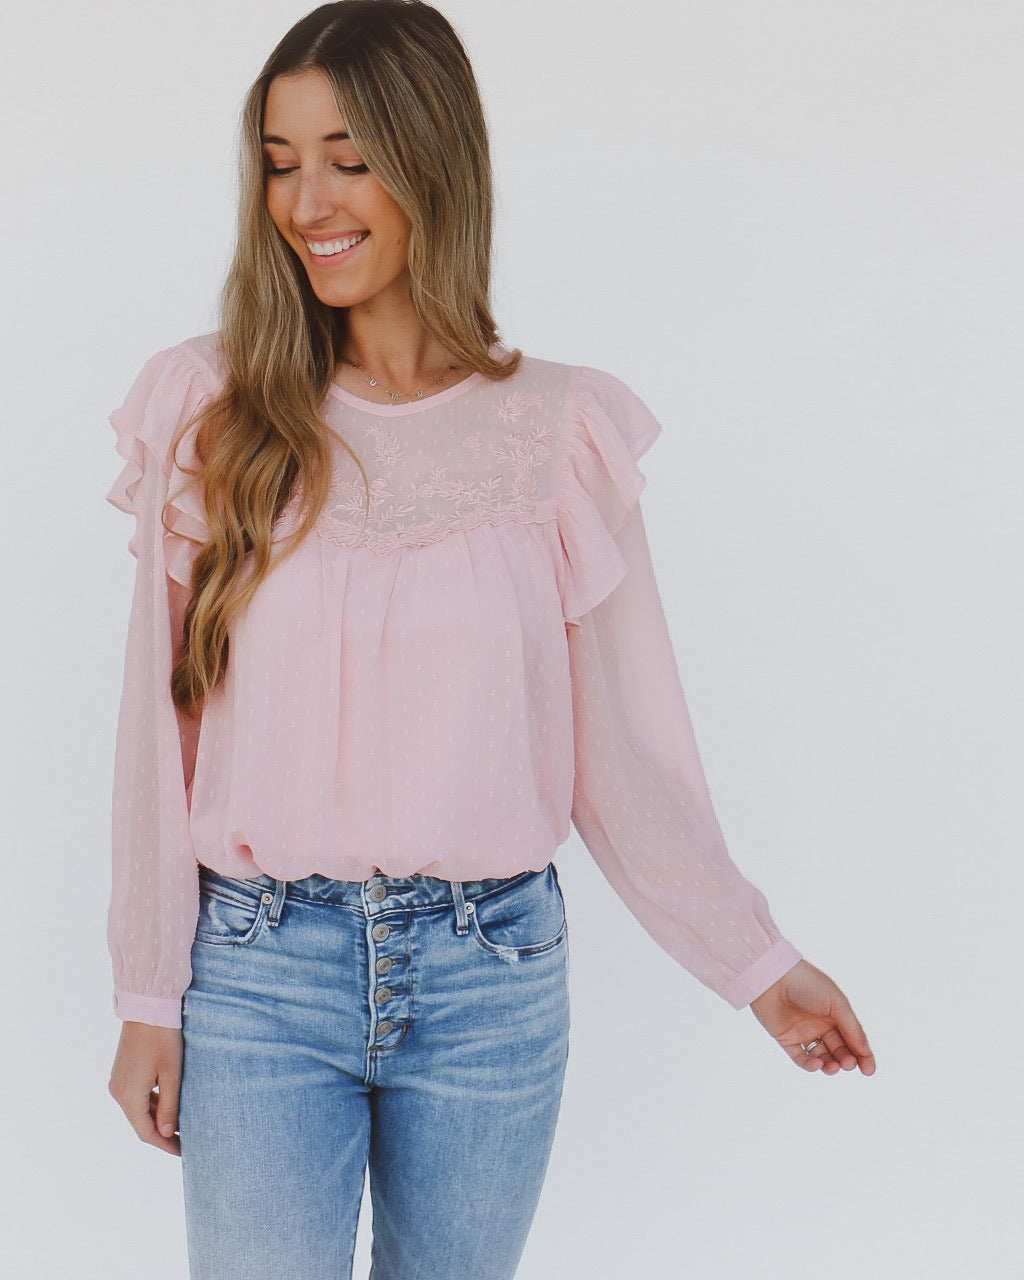 Cambridge Top in Pink